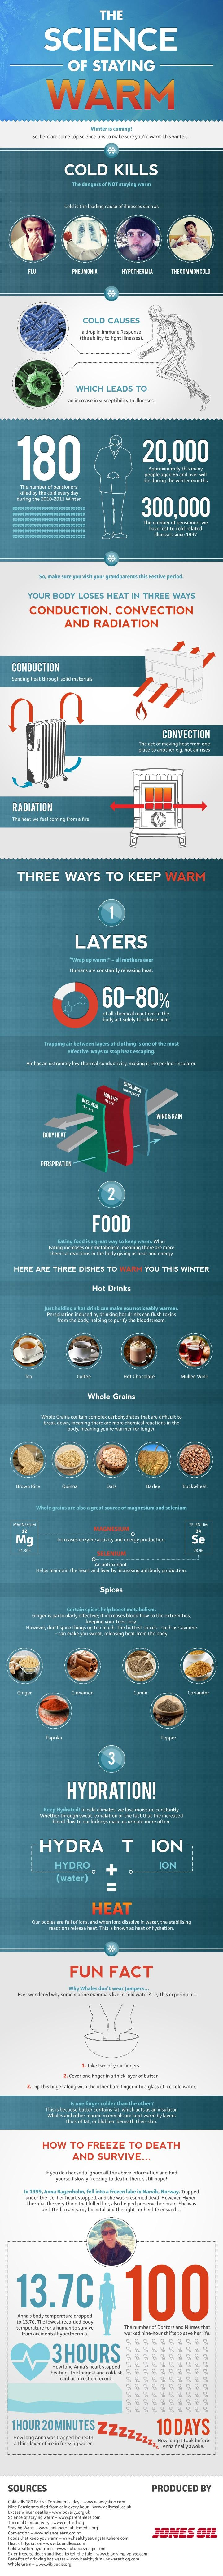 the-science-of-staying-warm-infographic